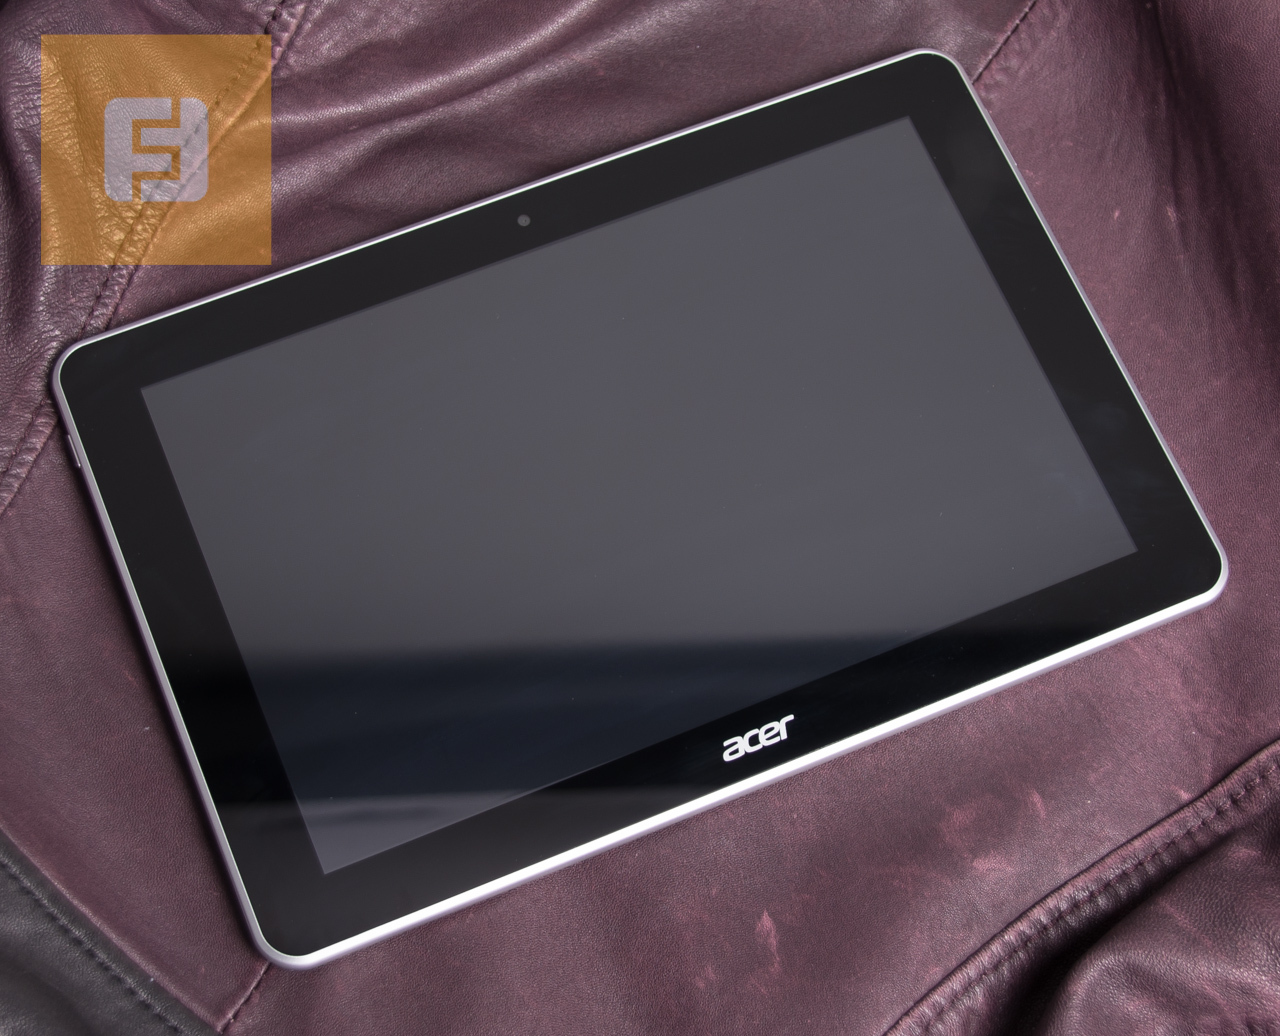 acer iconia b1 tablet user manual